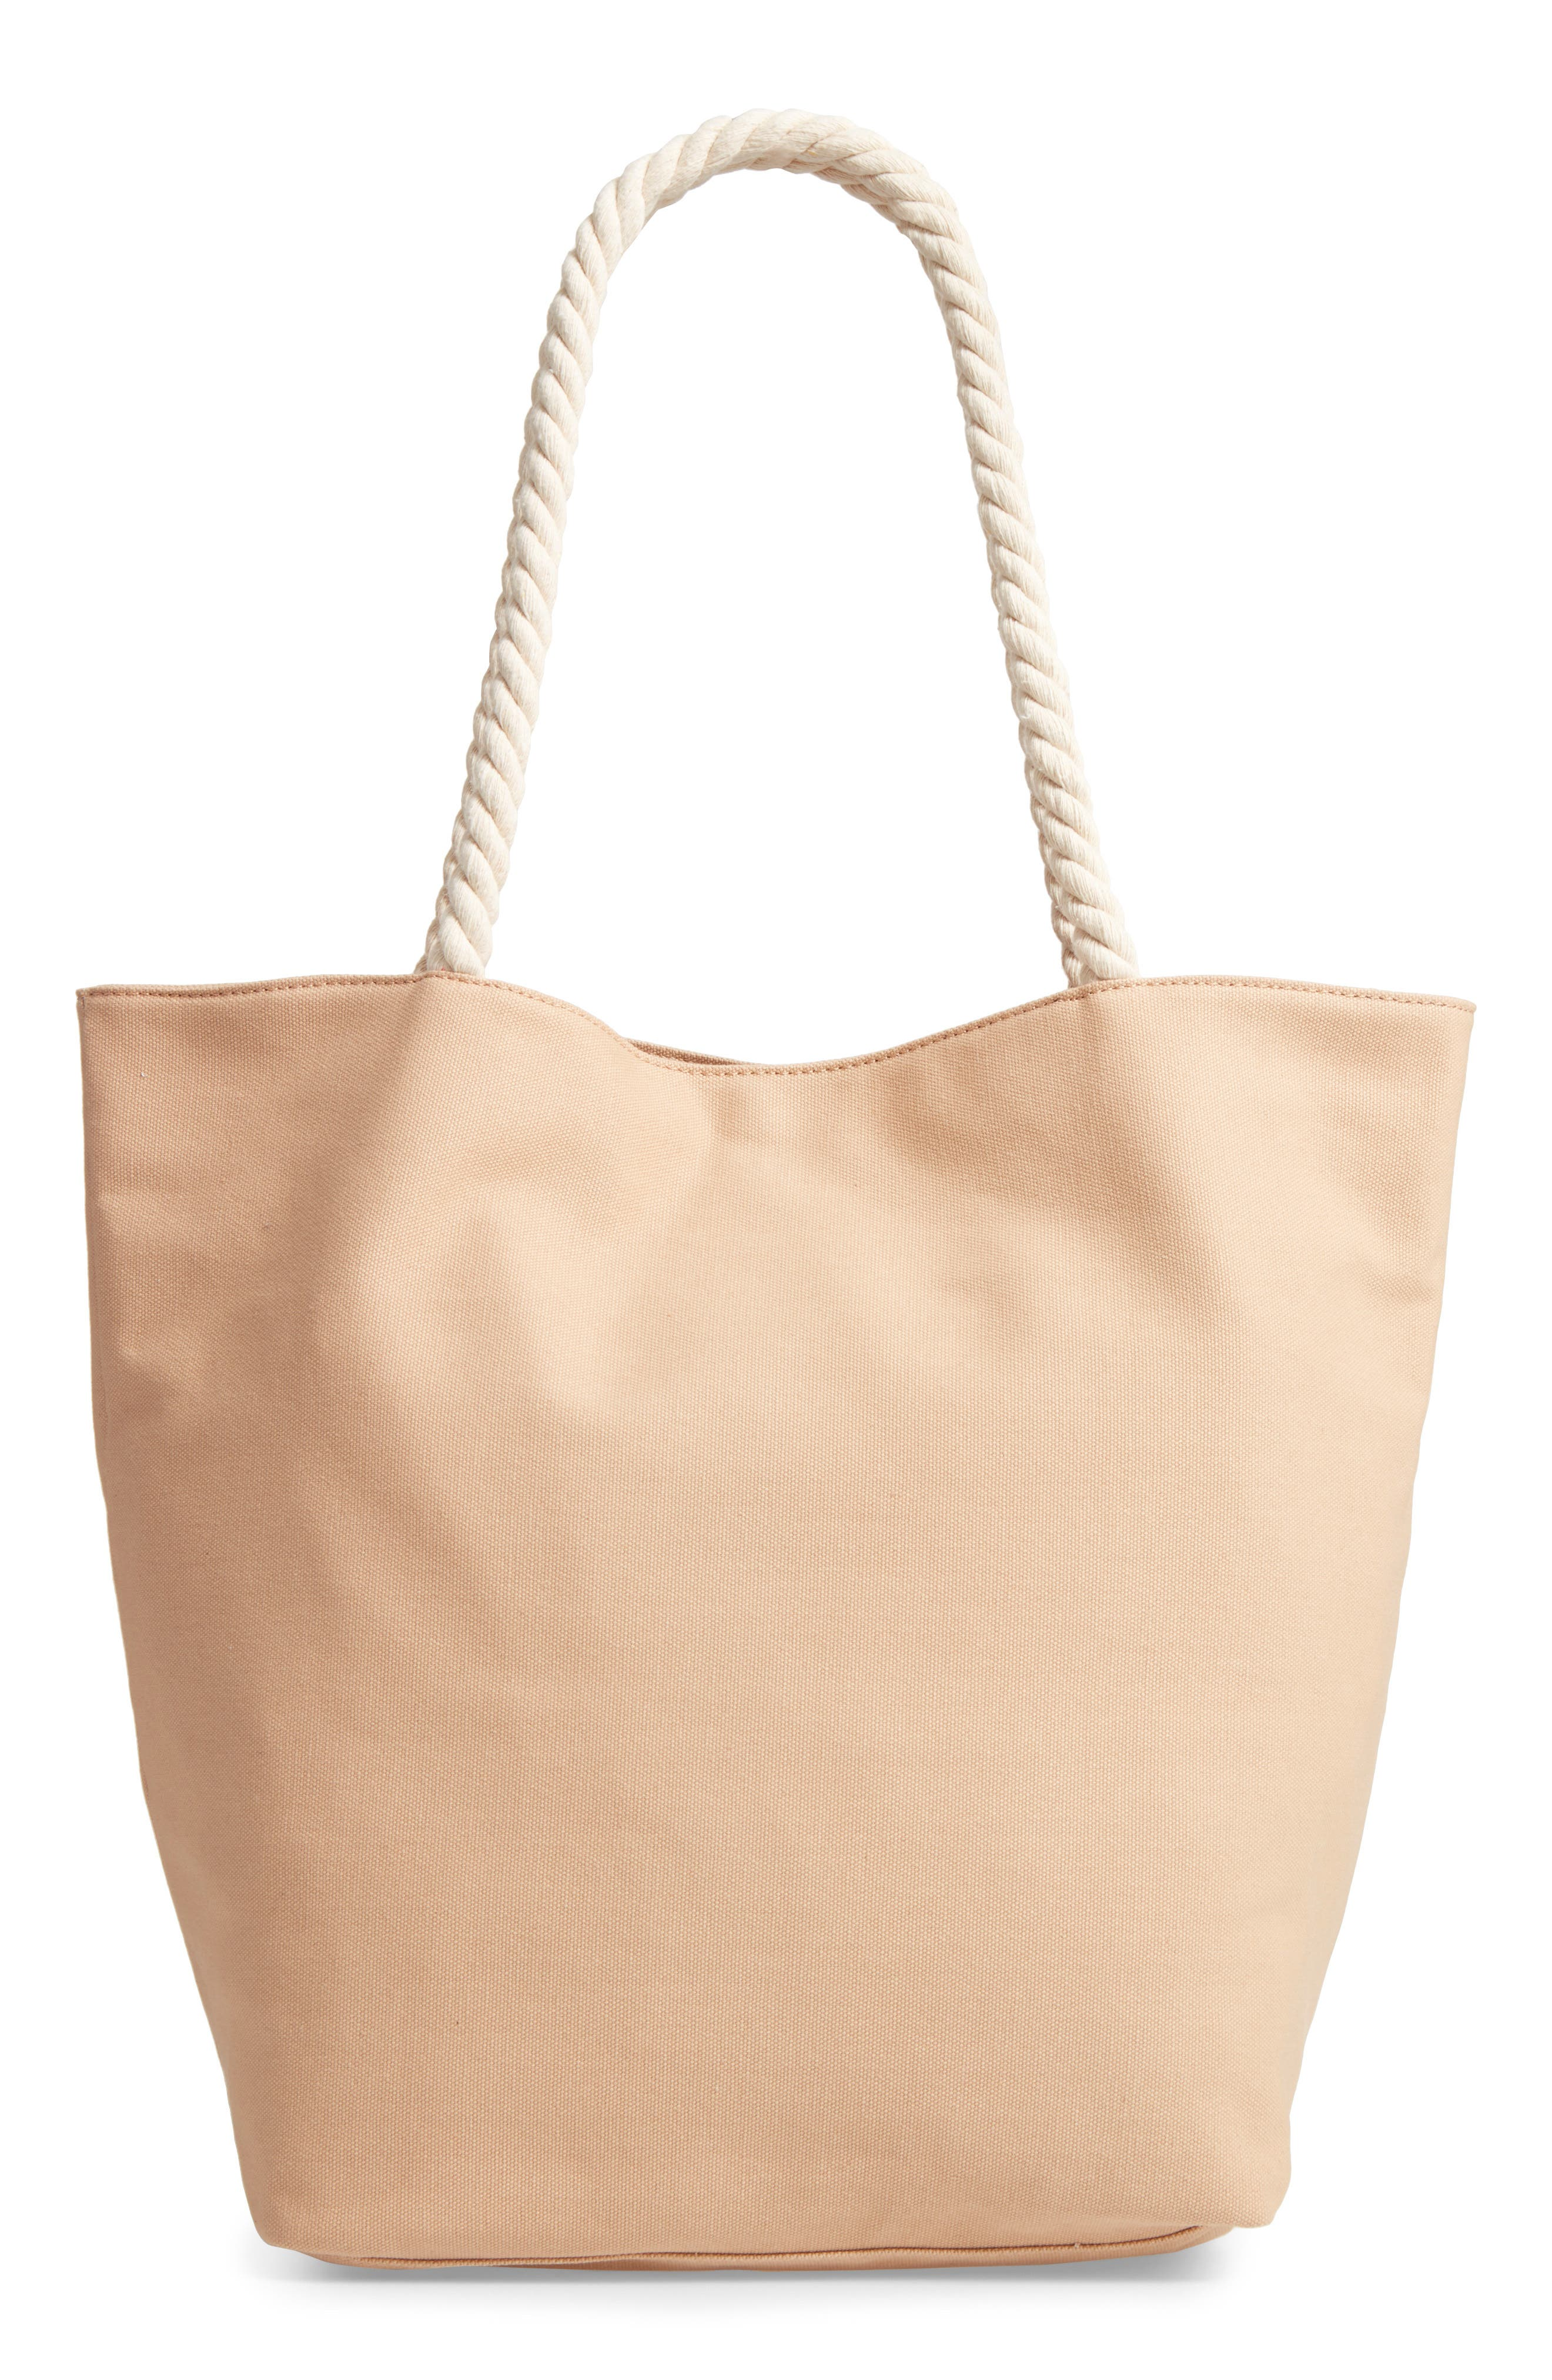 BP.,                             Rope Handle Canvas Tote,                             Alternate thumbnail 3, color,                             250